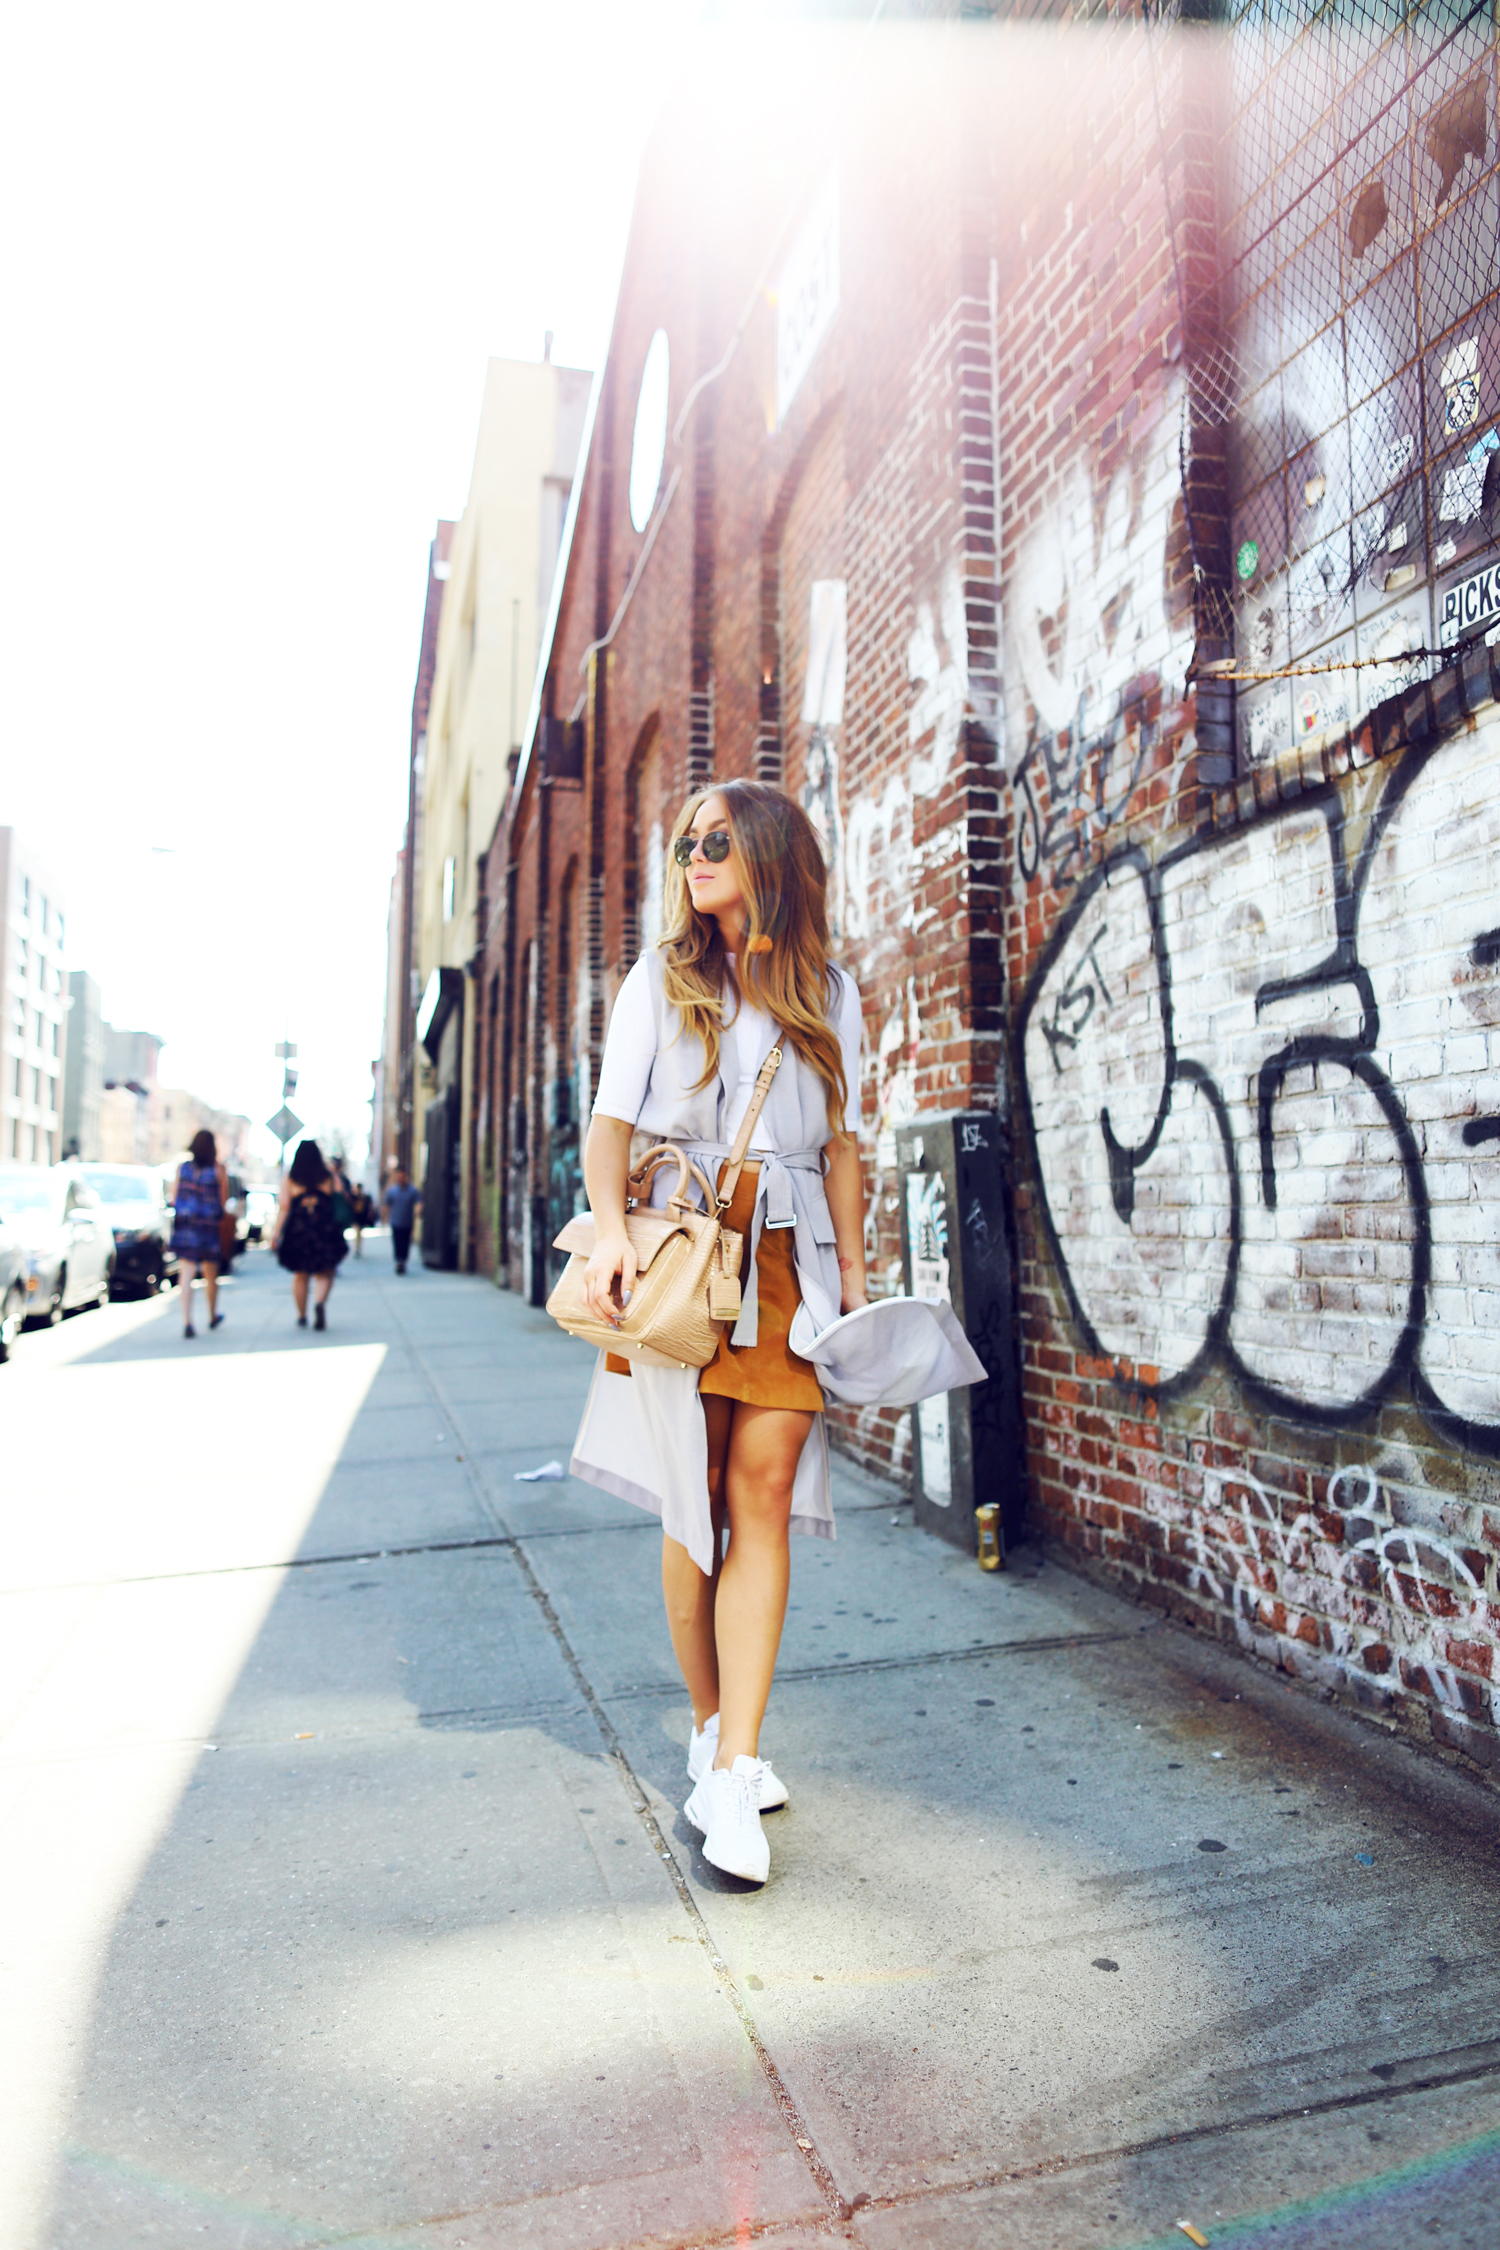 Via Just The Design: Angelica Blick is wearing a suede Zara mini skirt with a pale grey Topshop vest, a white Topshop tee, Nike sneakers and a beige leather handbag